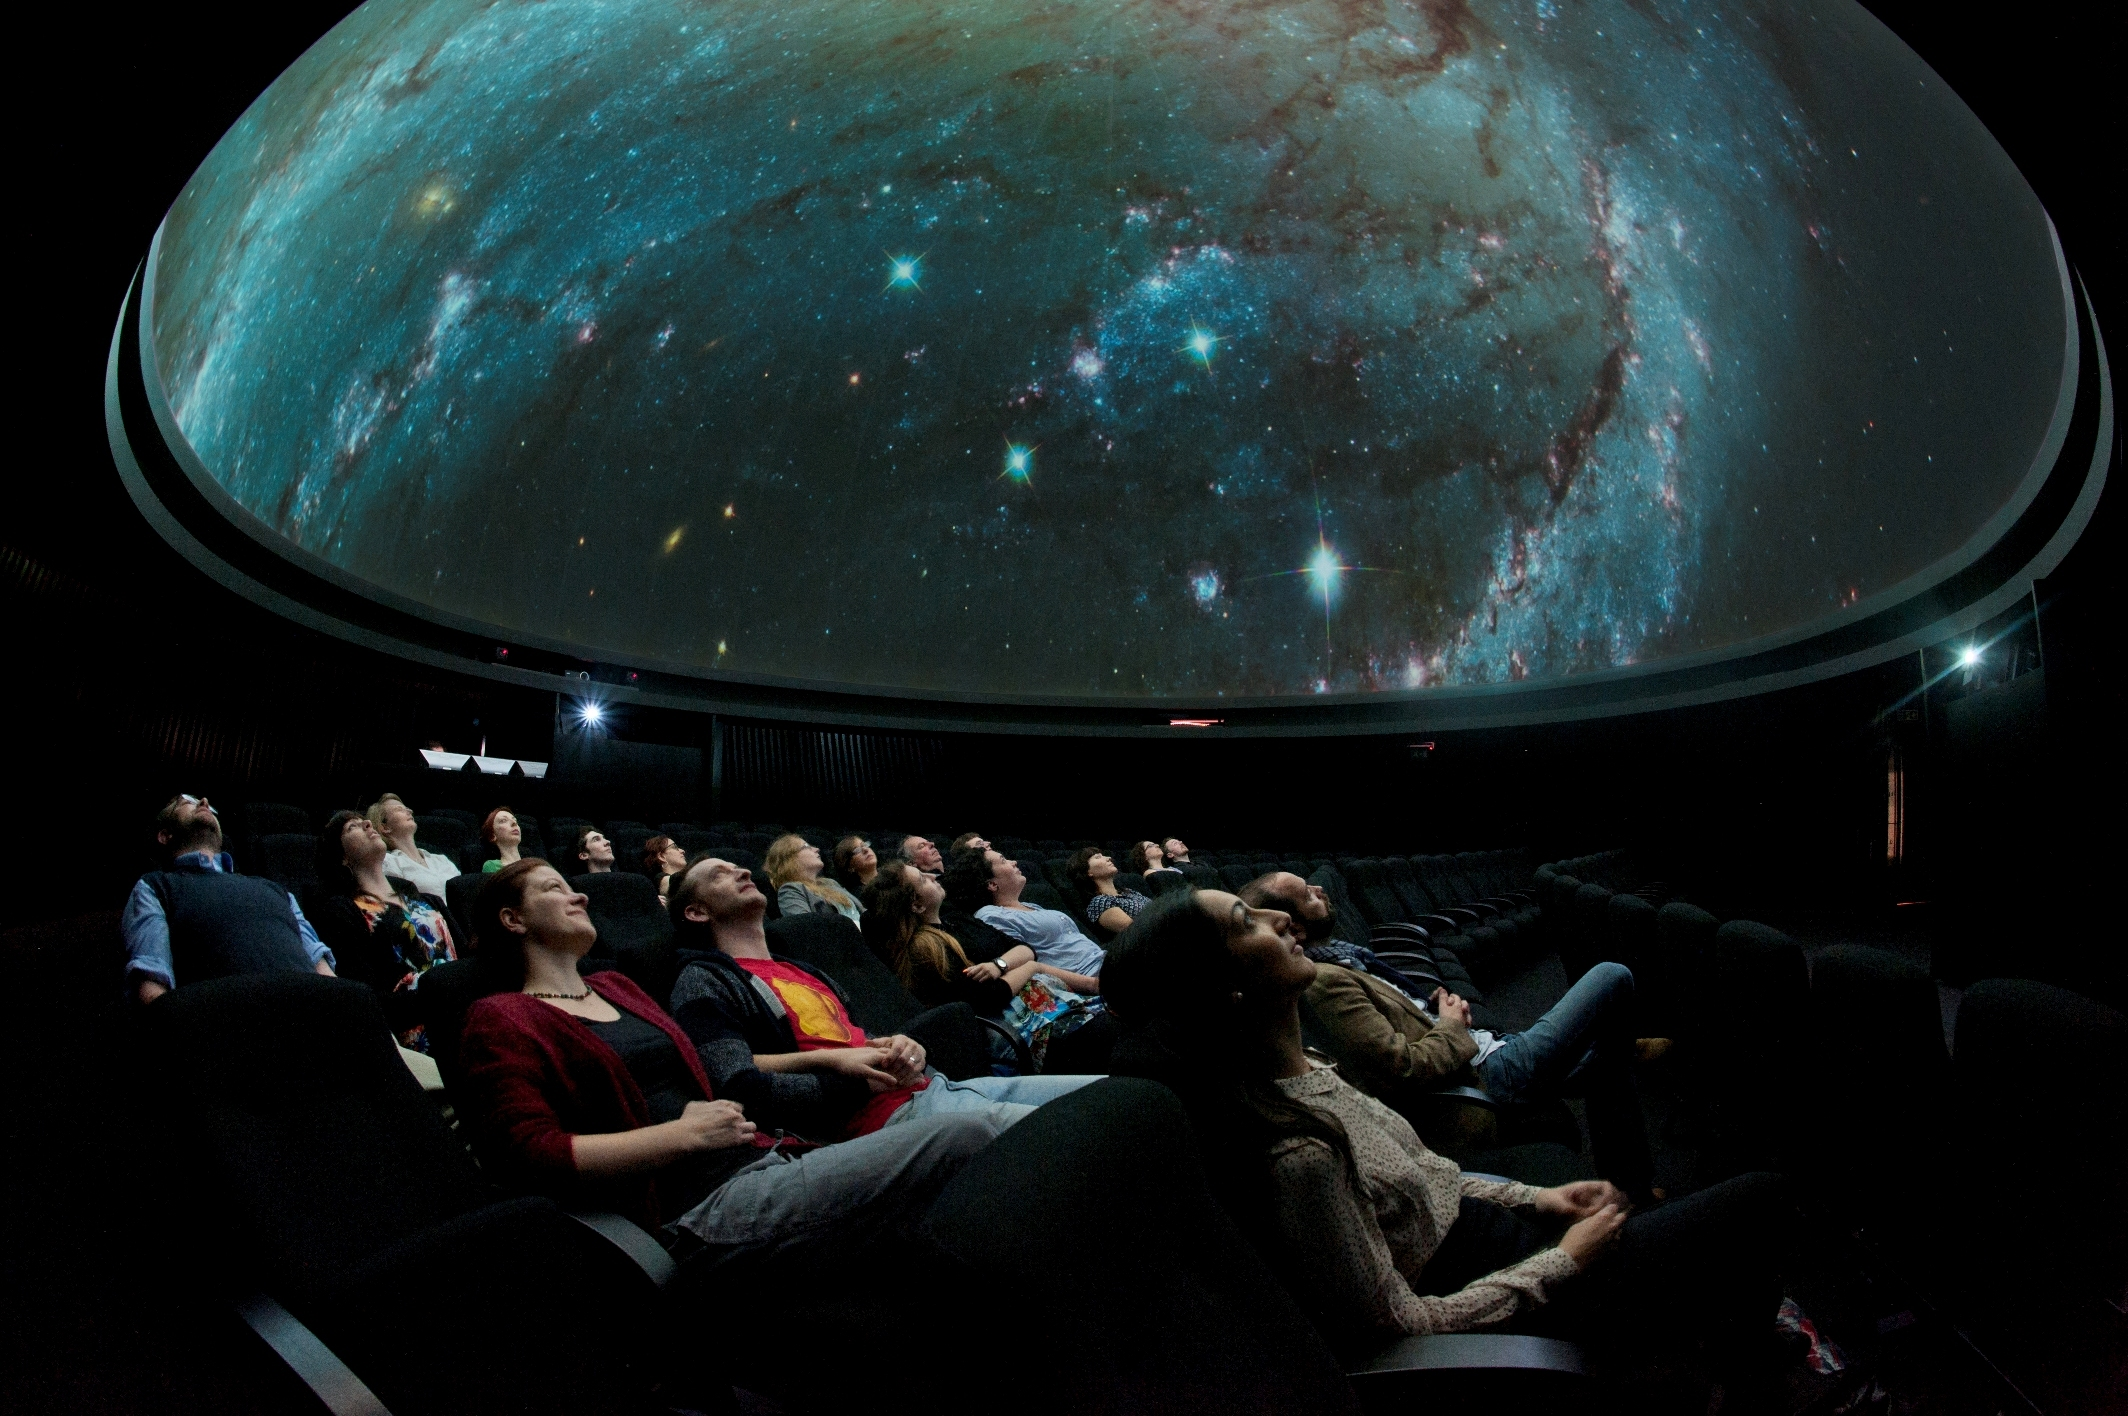 Peter Harrison Planetarium, The Day the Earth Caught Fire